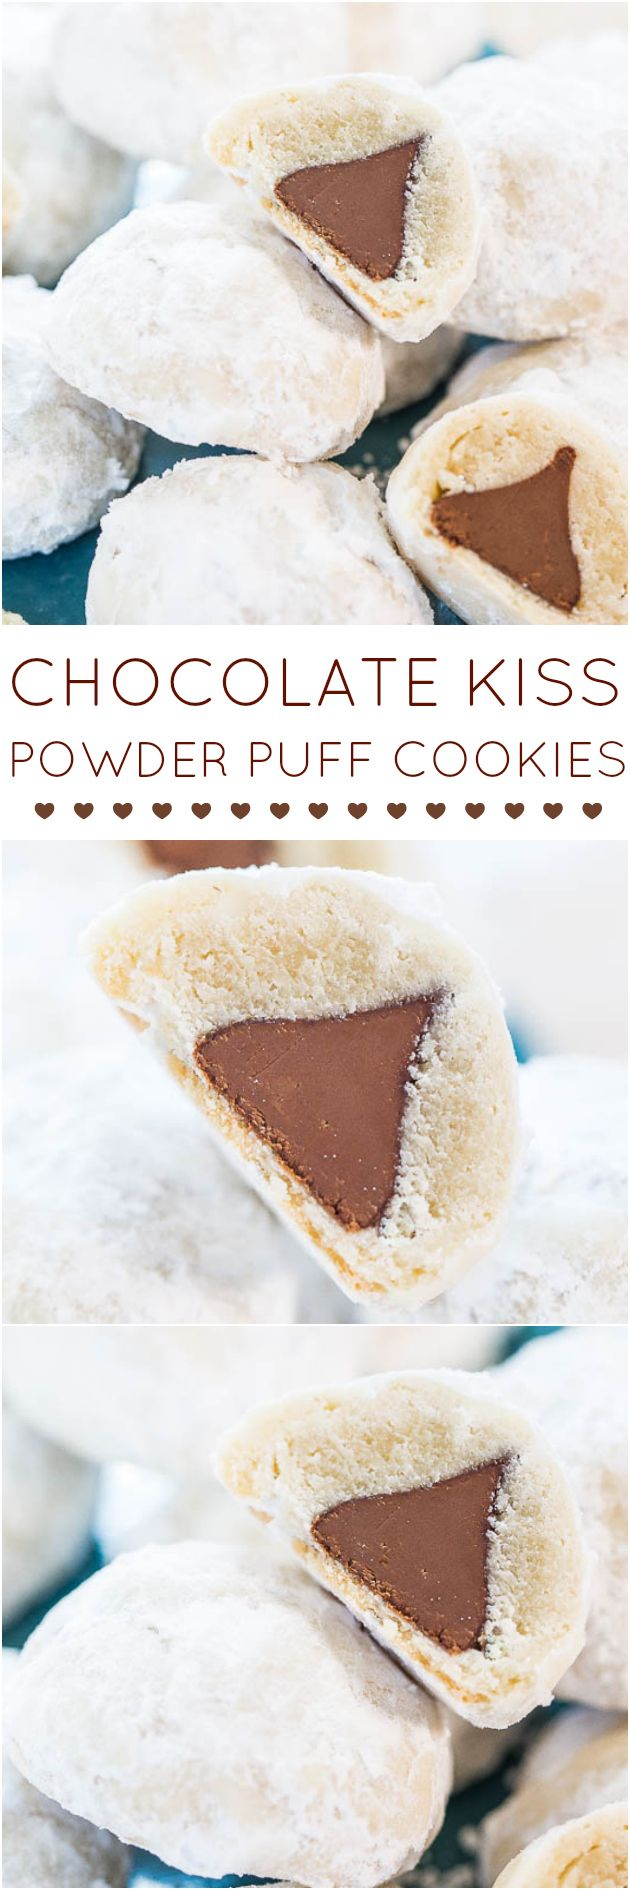 Chocolate Kiss Powder Puff Cookies - Easiest cookies ever with only 3 ingredients! The Kiss in the middle makes everyone smile!! So fun!!